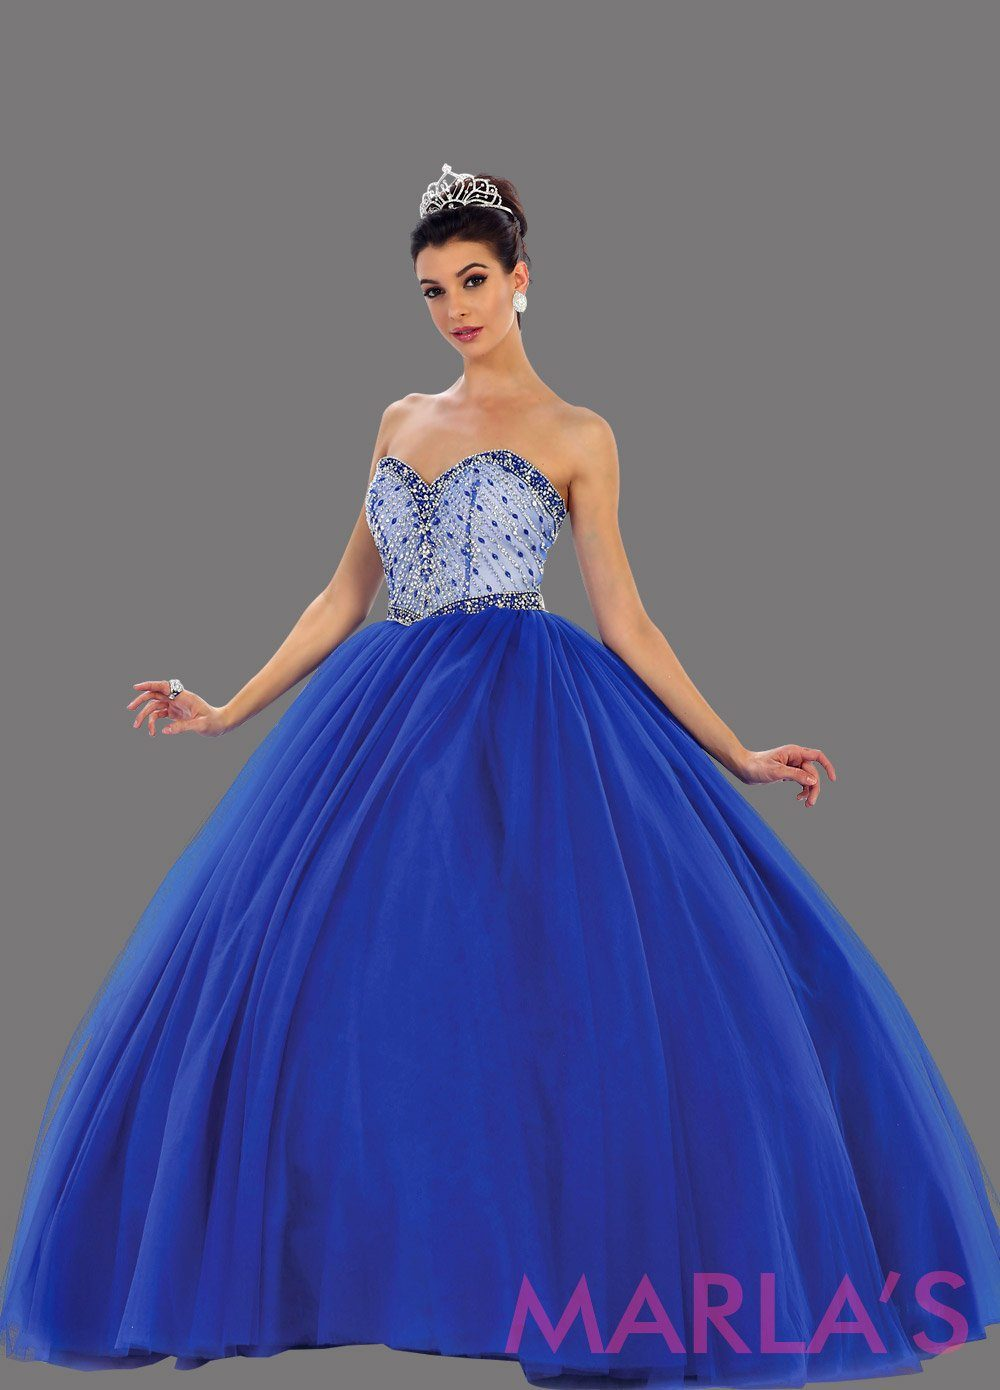 Long royal blue strapless princess quinceanera ball gown with rhinestone beading. Perfect royal blue dress for Engagement dress, Quinceanera, Sweet 16, Sweet 15 and pink Wedding Reception Dress. Available in plus